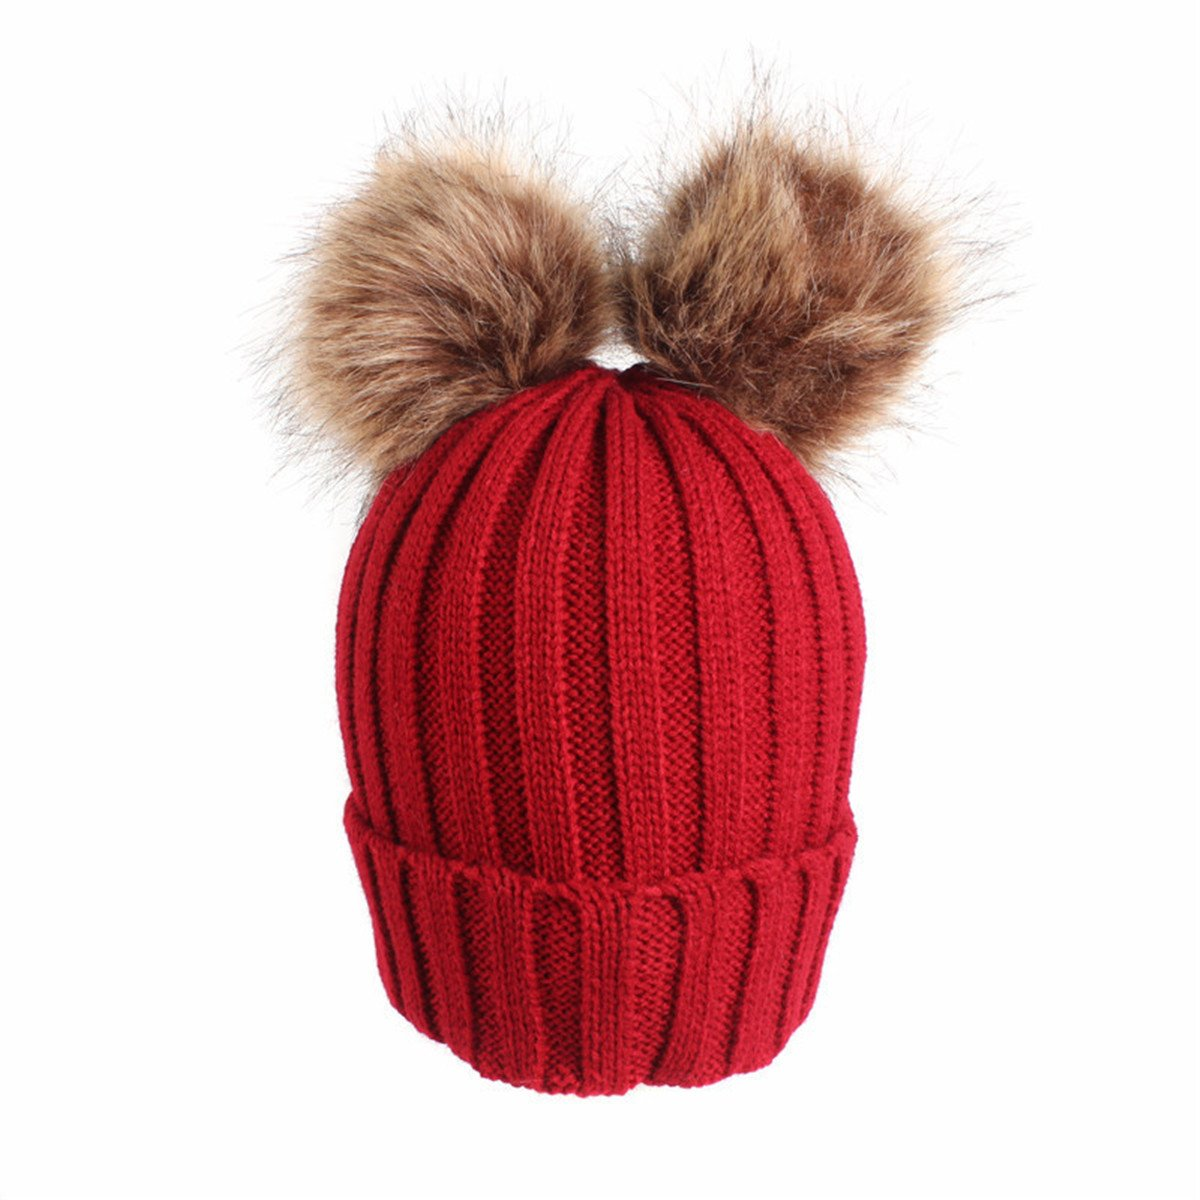 Qhome Kids Winter Warm Beanie Hat With Pom Pom Children Beanies Knitted Hats